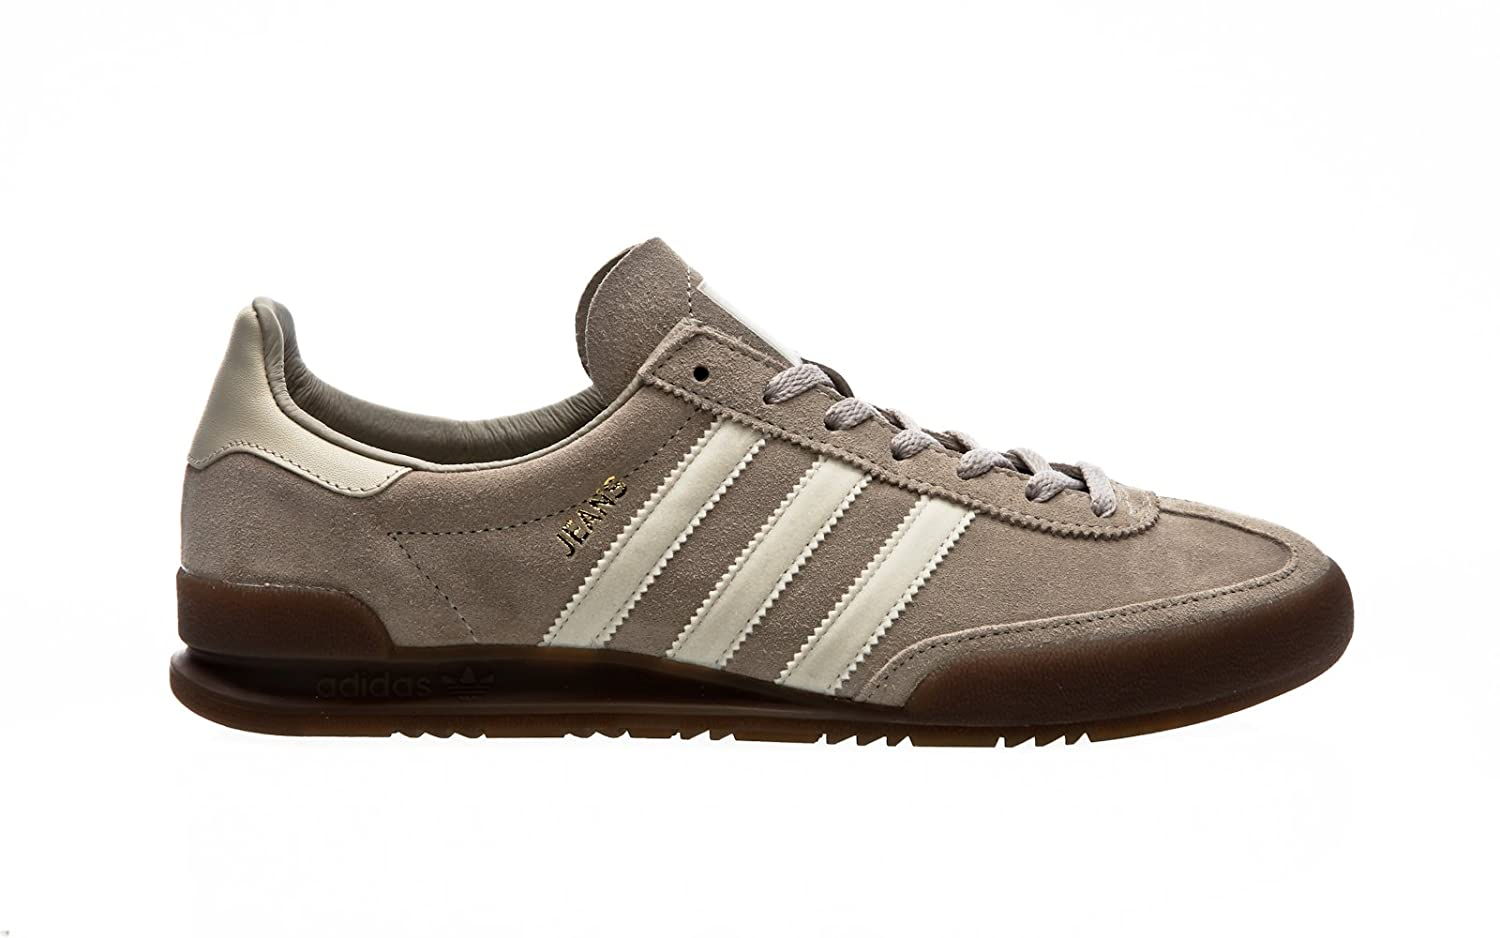 promo code clearance sale latest fashion Adidas Originals Jeans MkII Light Brown Clear Brown